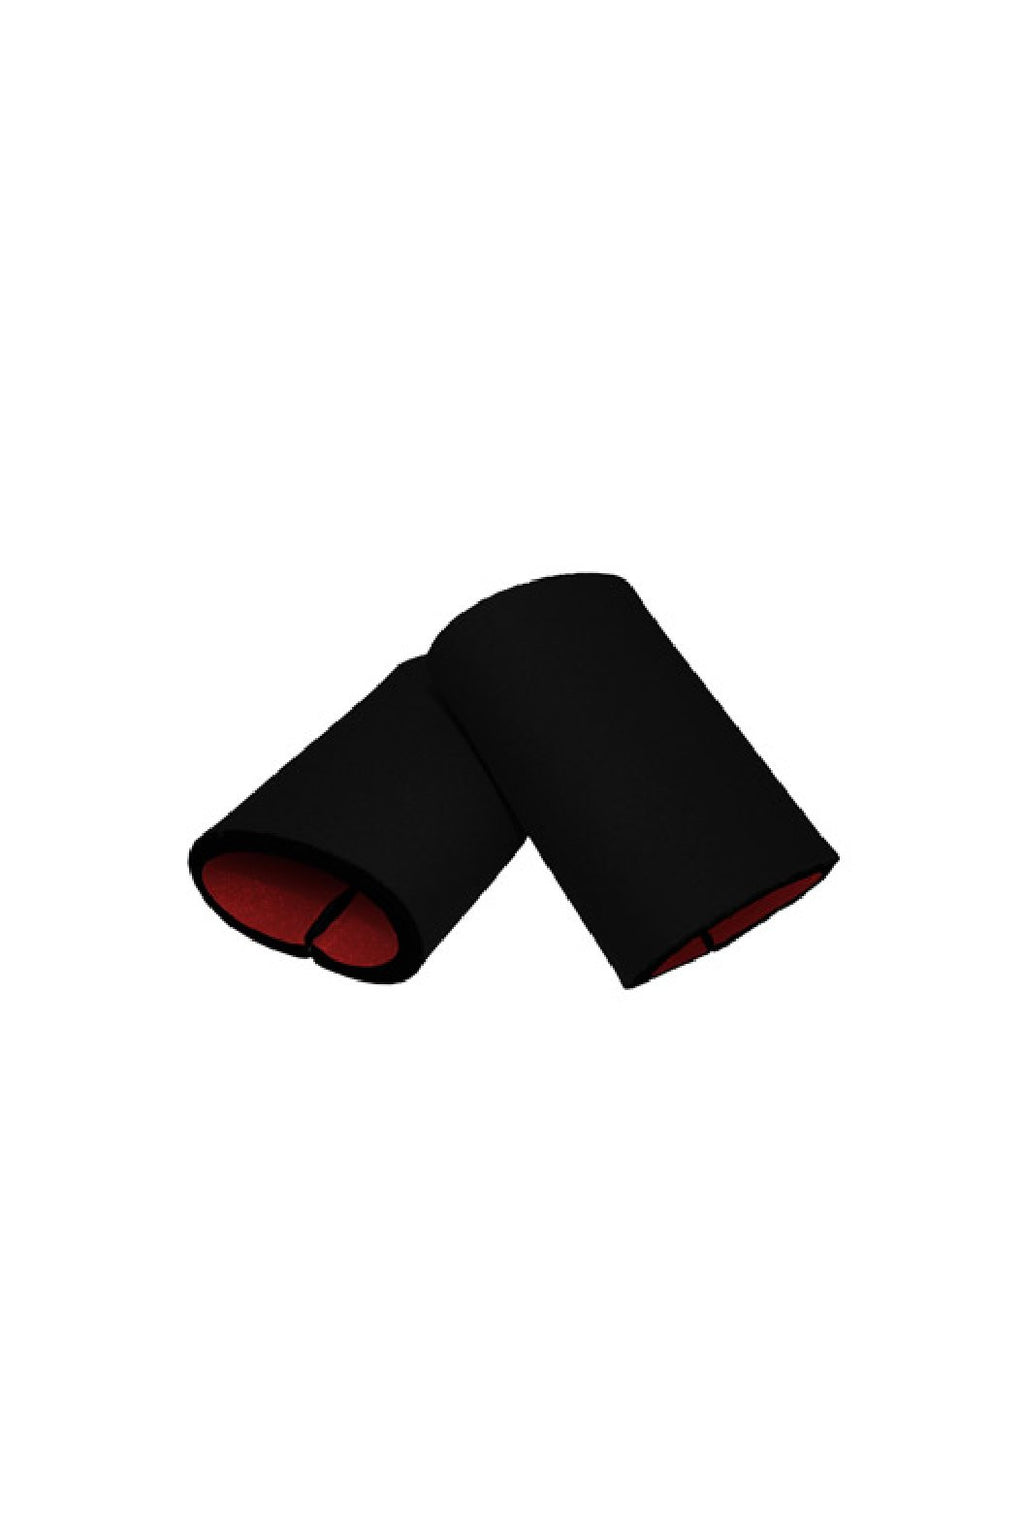 Black/ Red Reversible Neoprene Wristbands